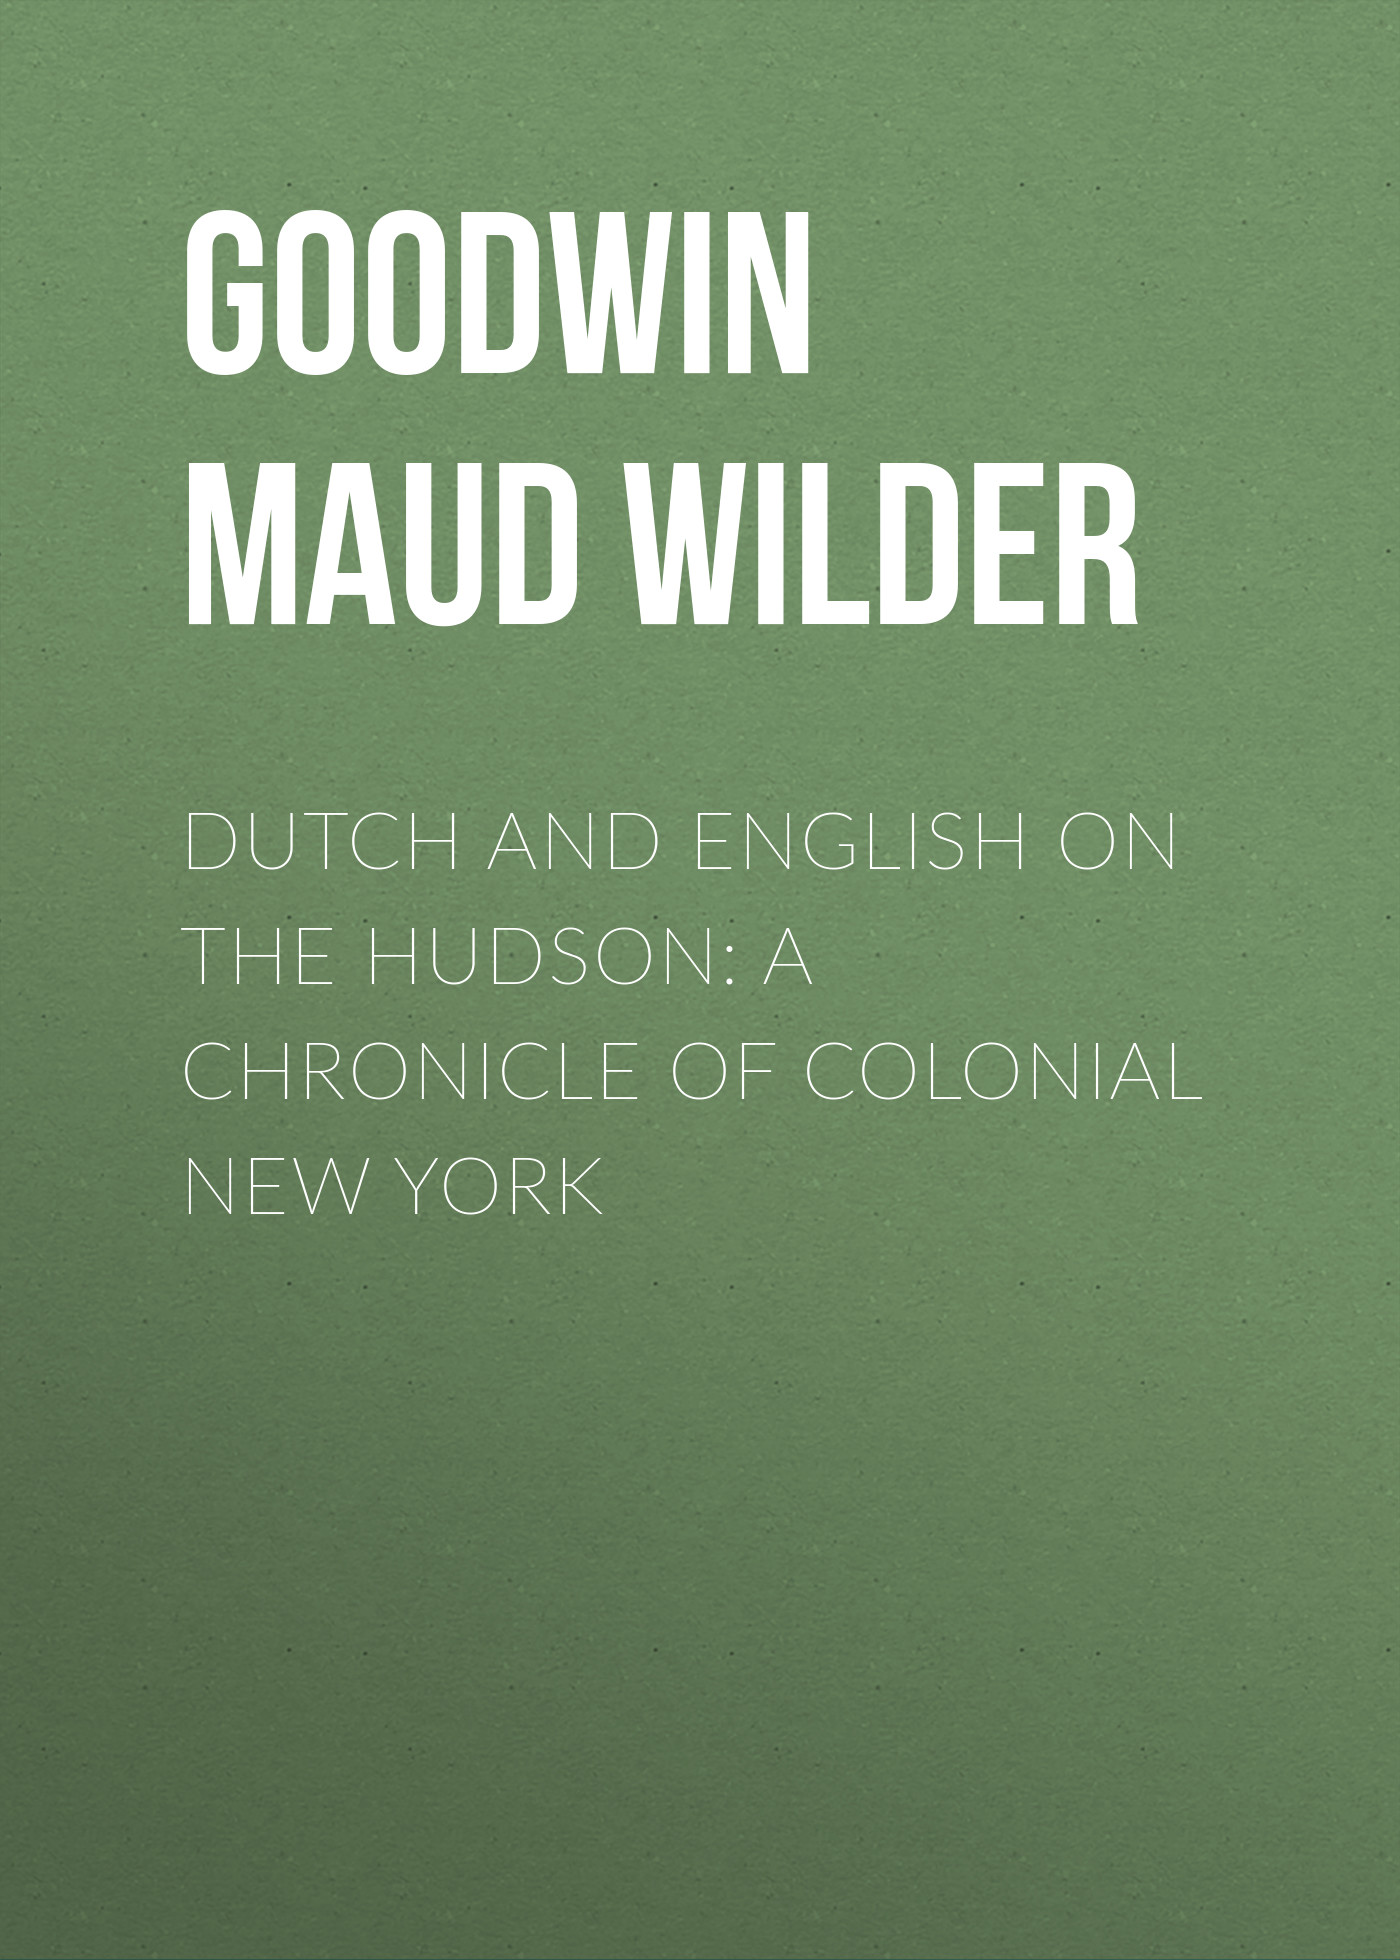 Goodwin Maud Wilder Dutch and English on the Hudson: A Chronicle of Colonial New York